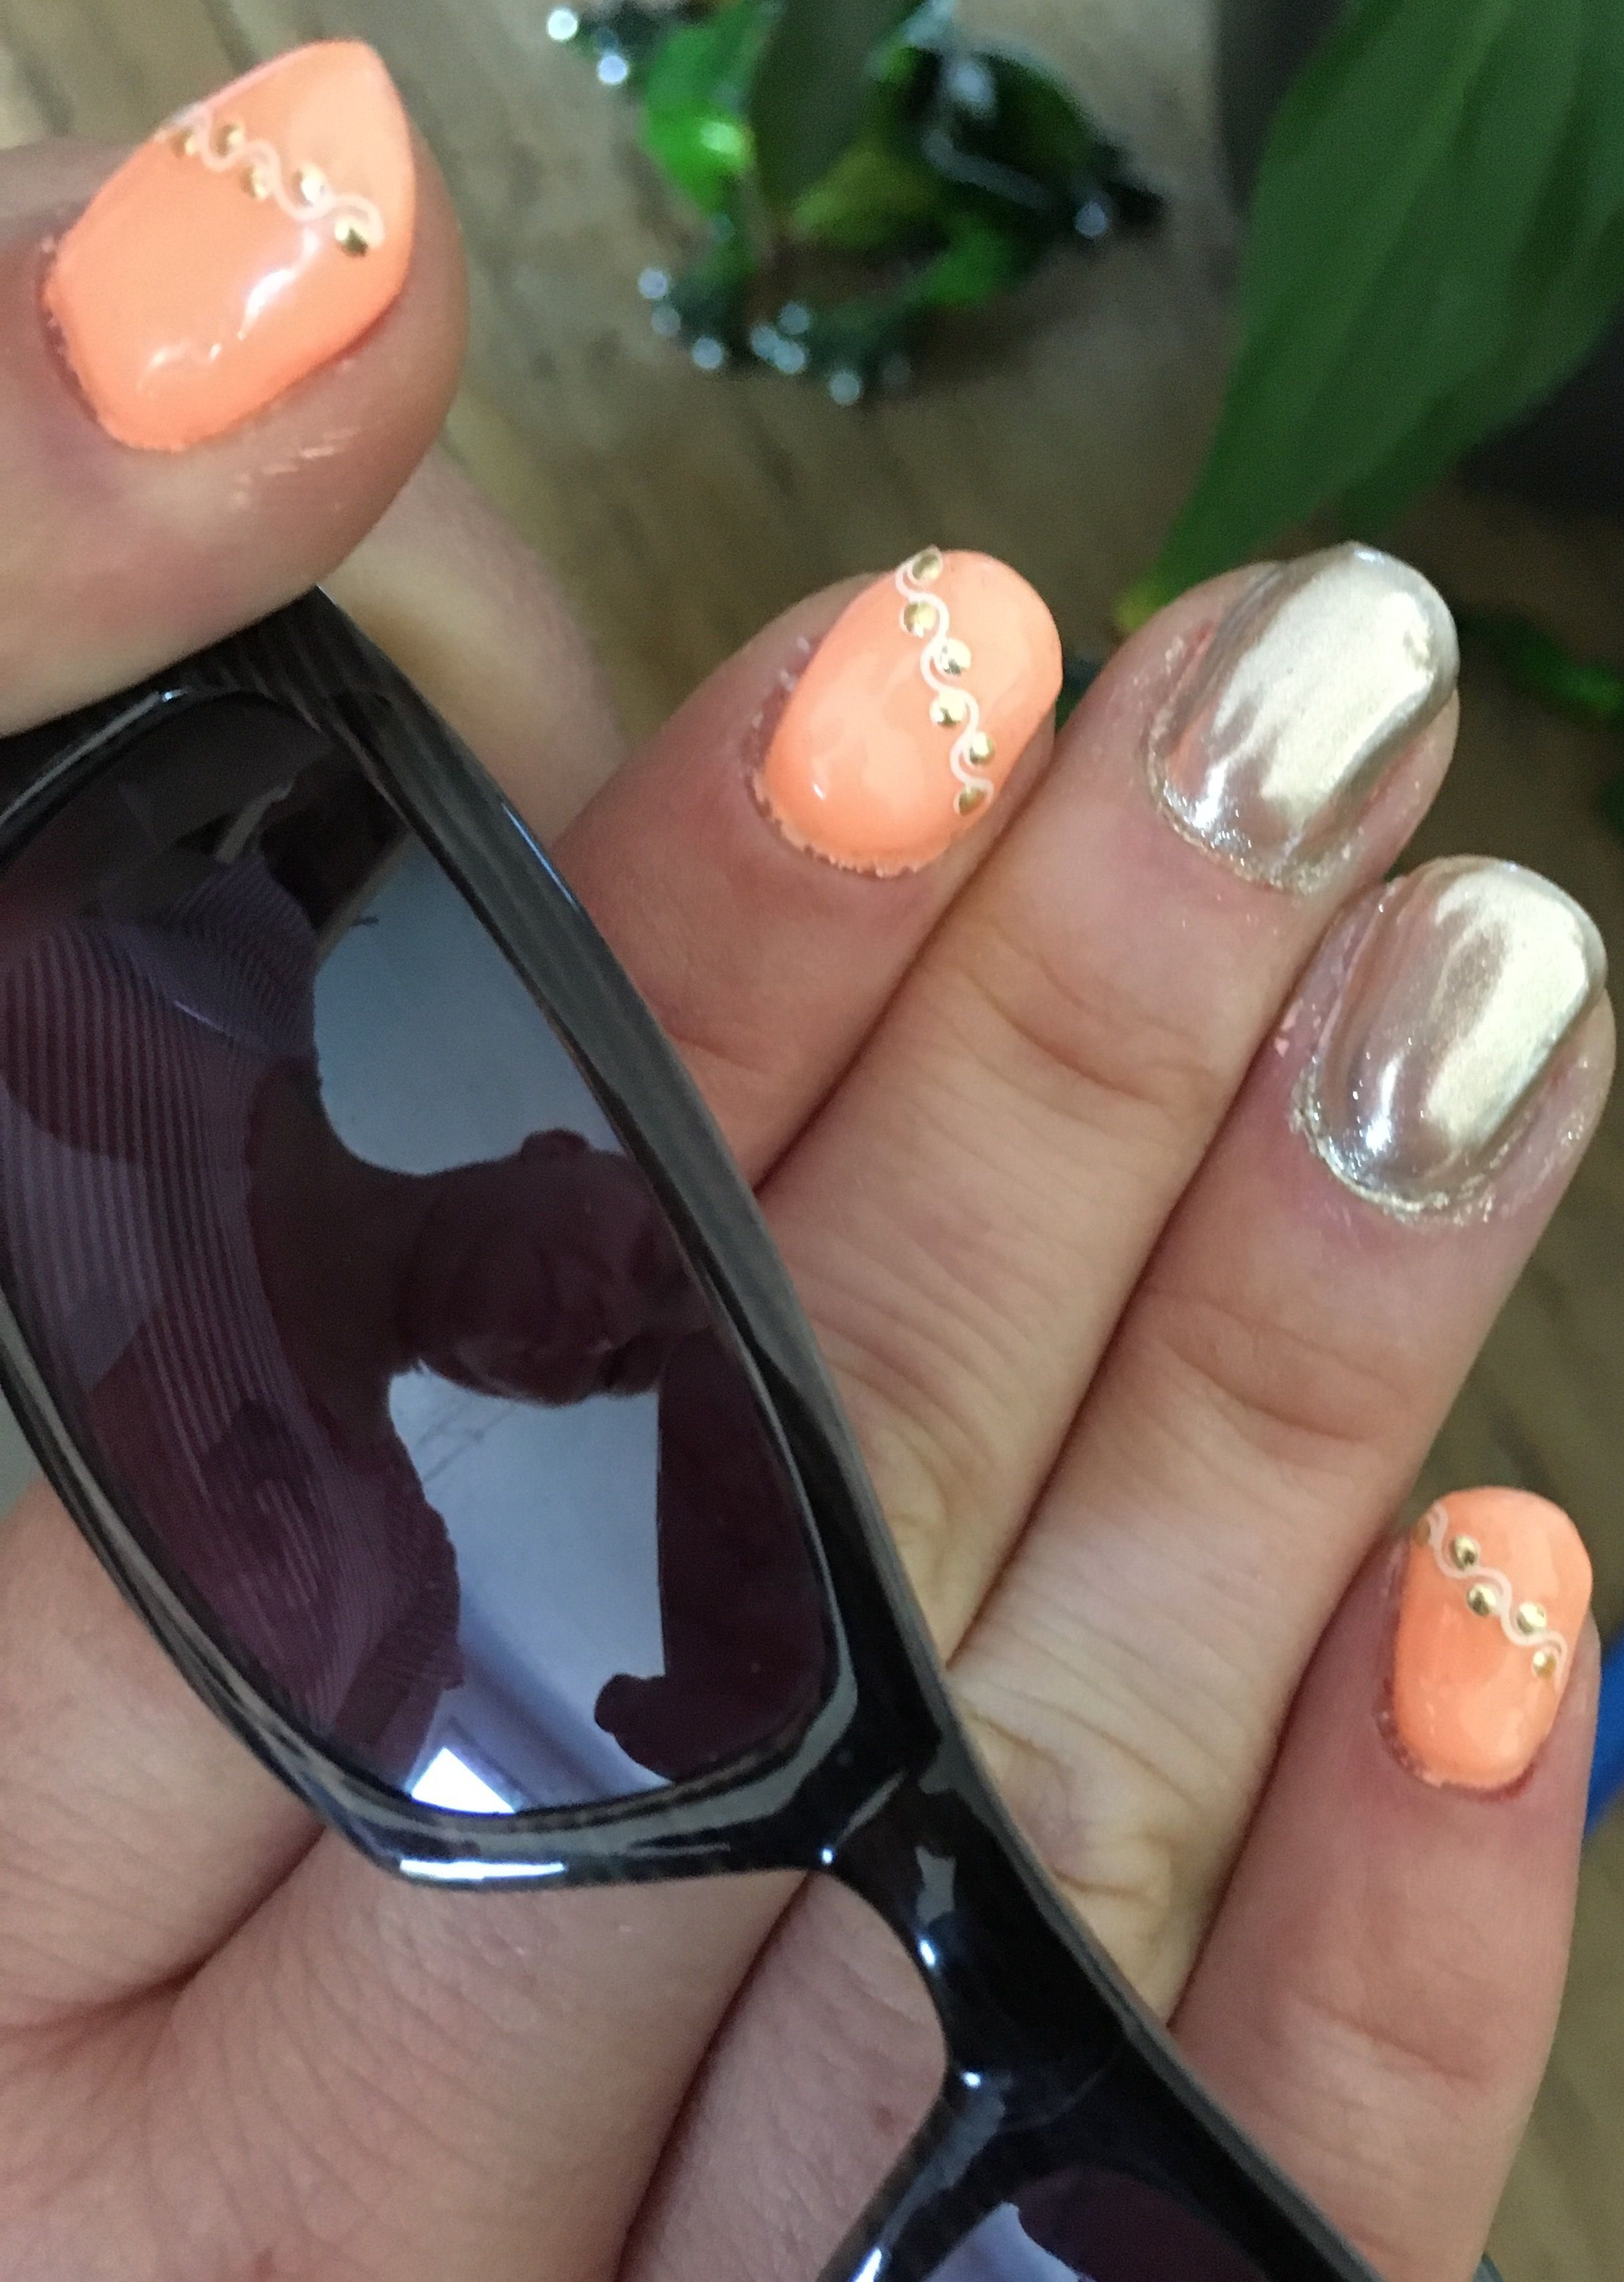 Nails - Nageldesign pastellorange mit Chrom- Puder | Nageldesign ...